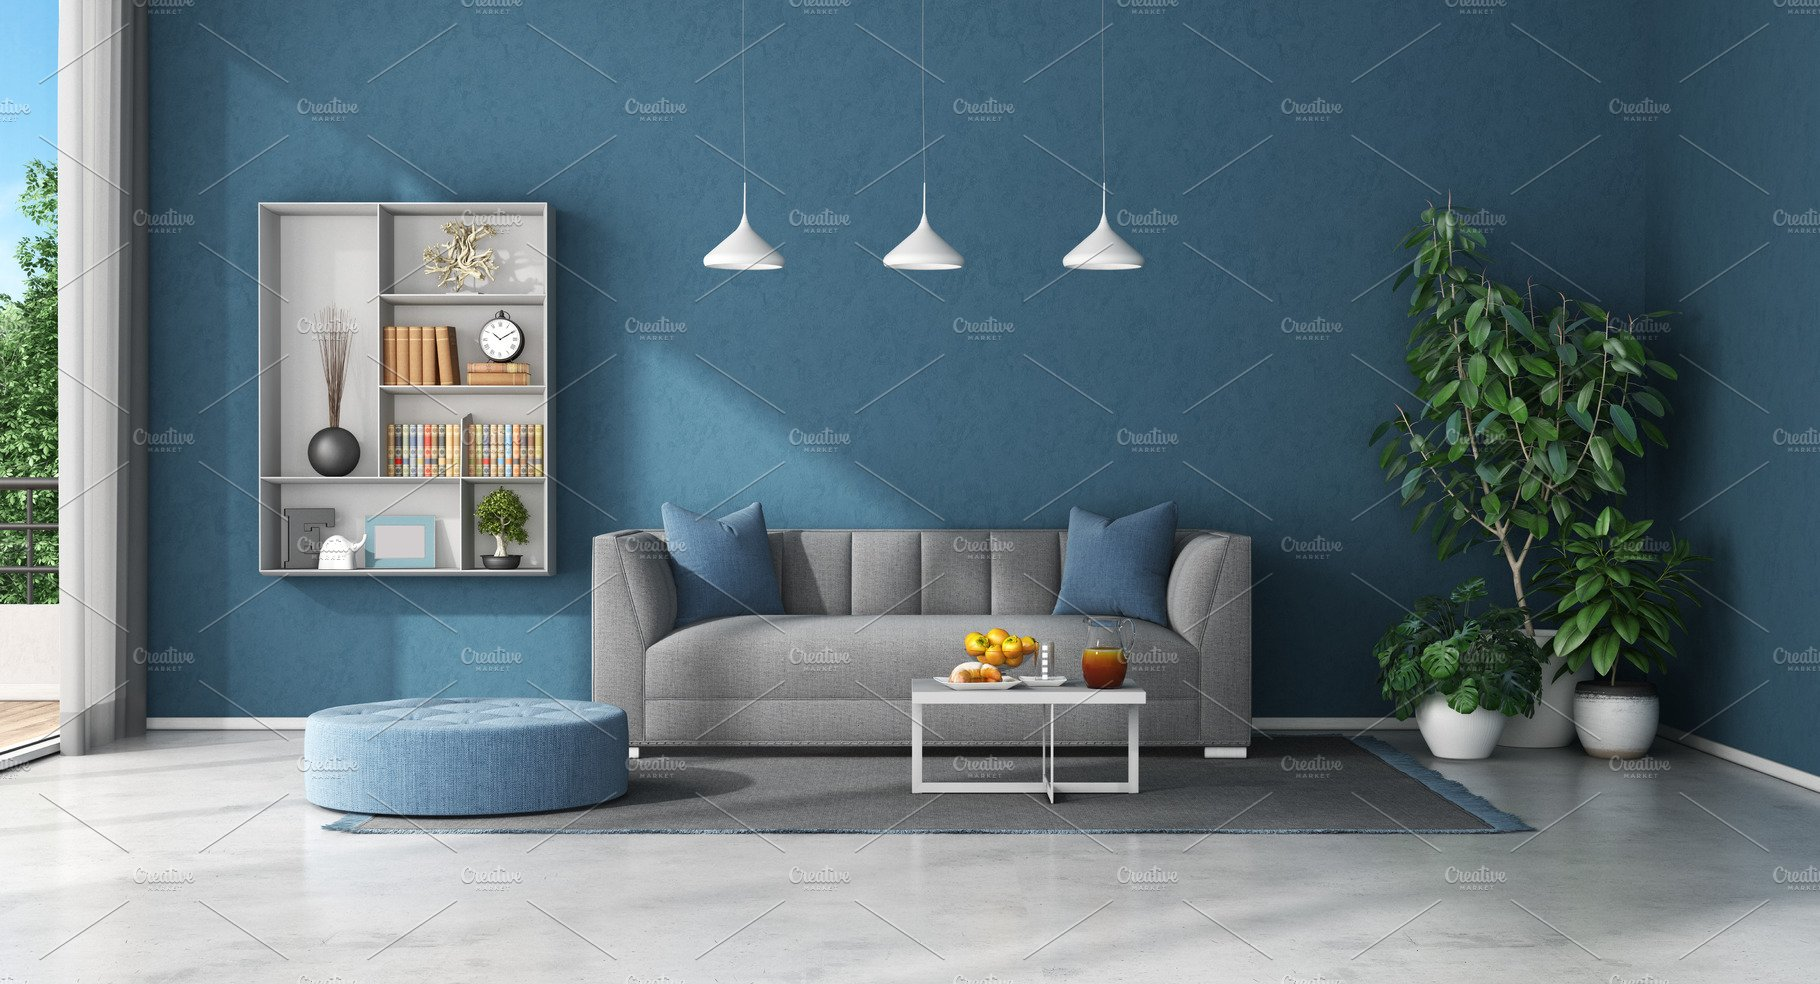 Blue Living Room With Sofa And Bookc High Quality Architecture Stock Photos Creative Market